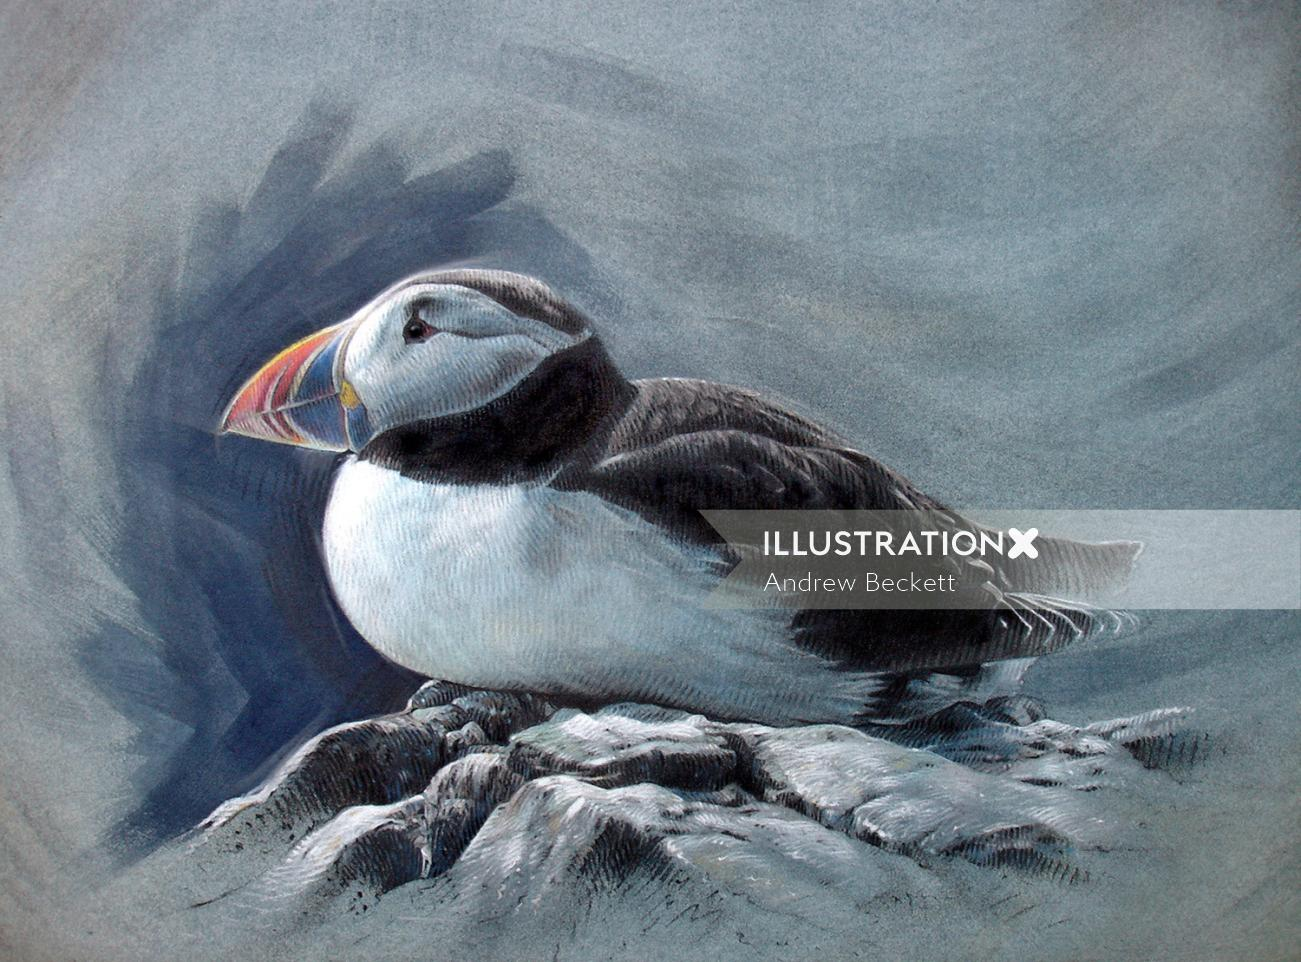 Puffin bird illustration by Andrew Becket